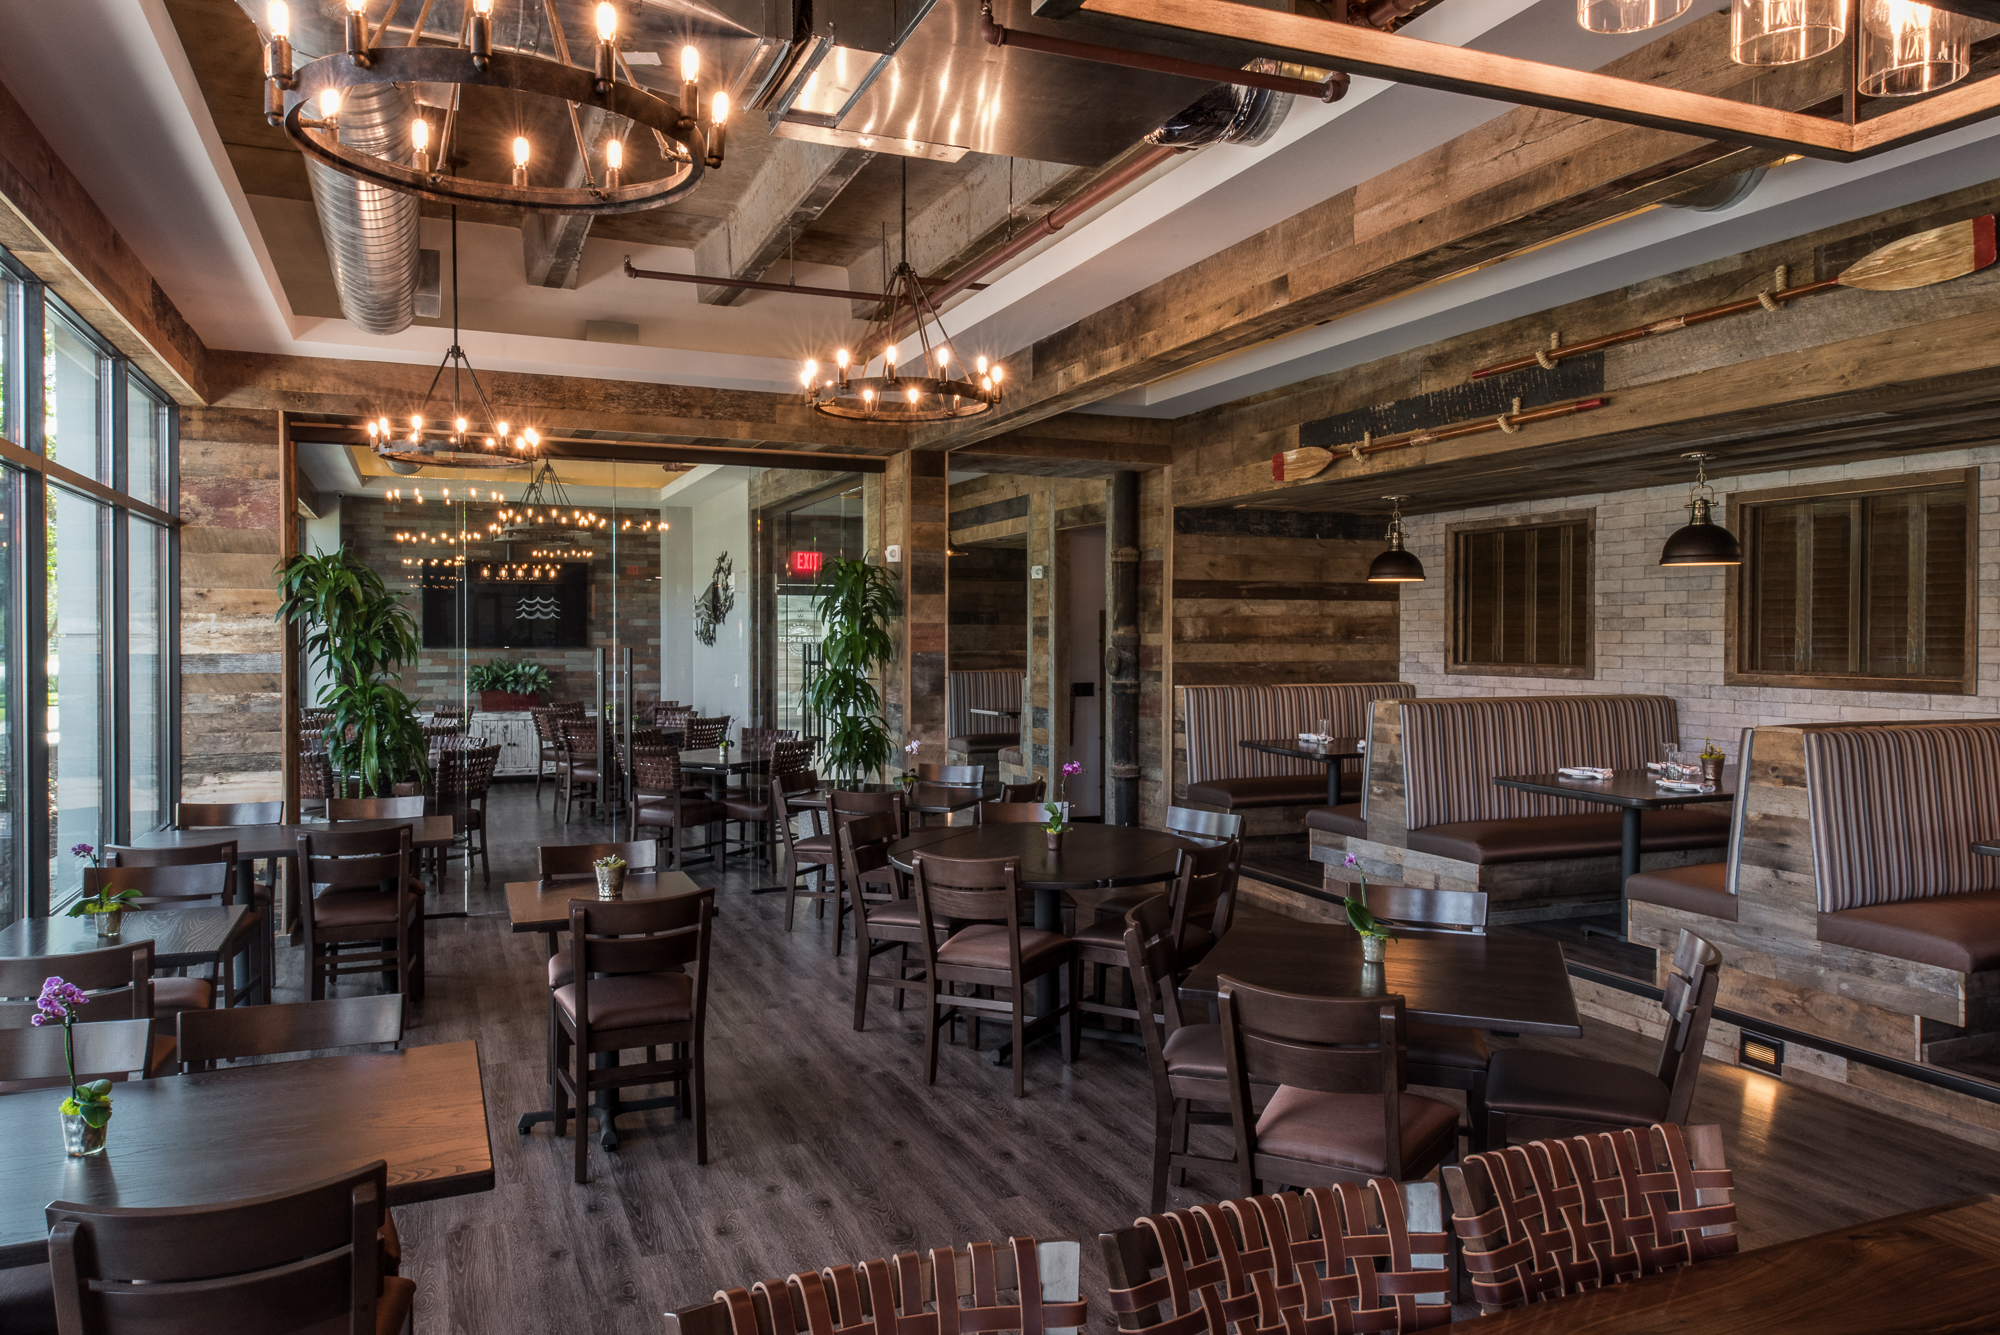 Micamy Design Studio_Interior Design_River and Post_Restaurant_Rooftop_Bar_Industrial_Rustic_Coastal_Riverside_Reclaimed Wood_Blog Style_Styling Accessories_Dining_Cocktails (10).jpg